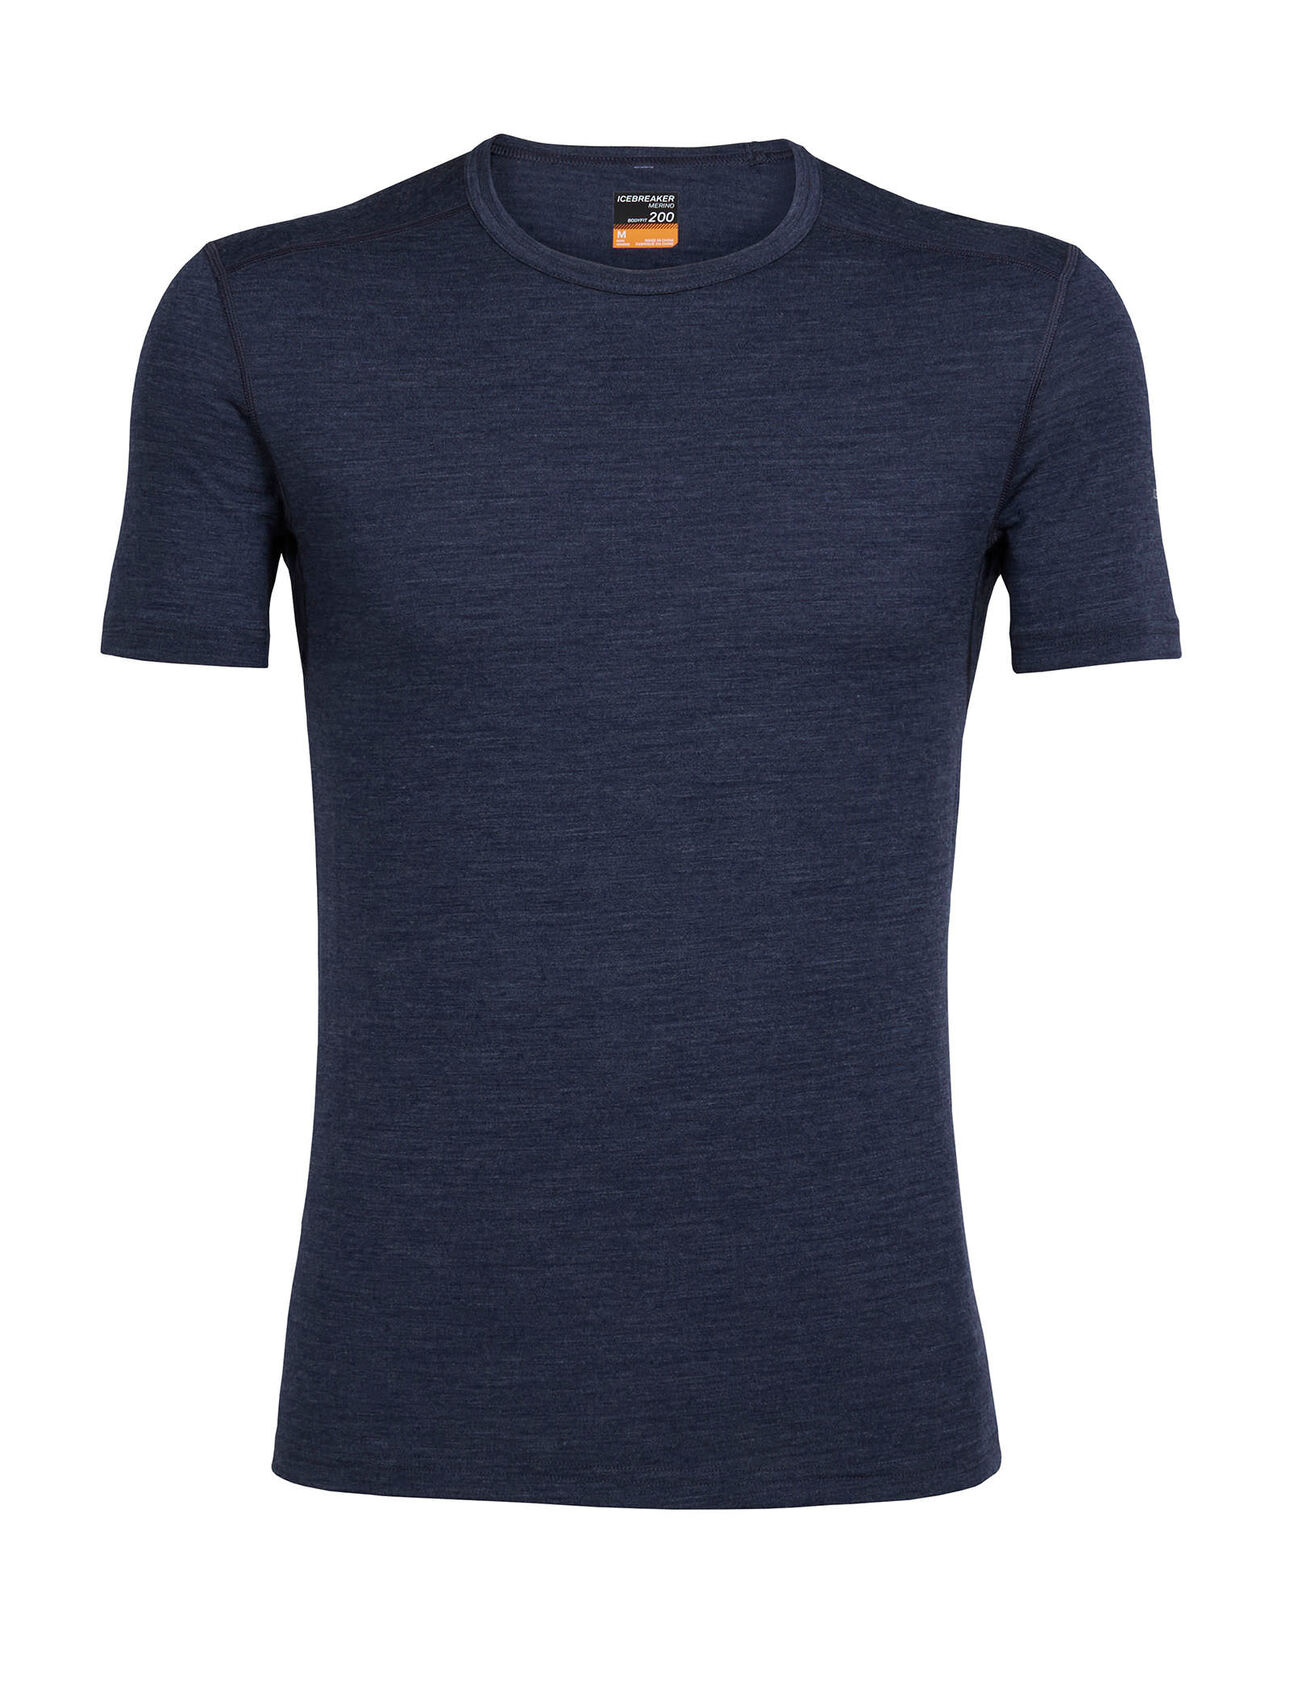 Icebreaker Men's 200 Tech Short Sleeve Crew